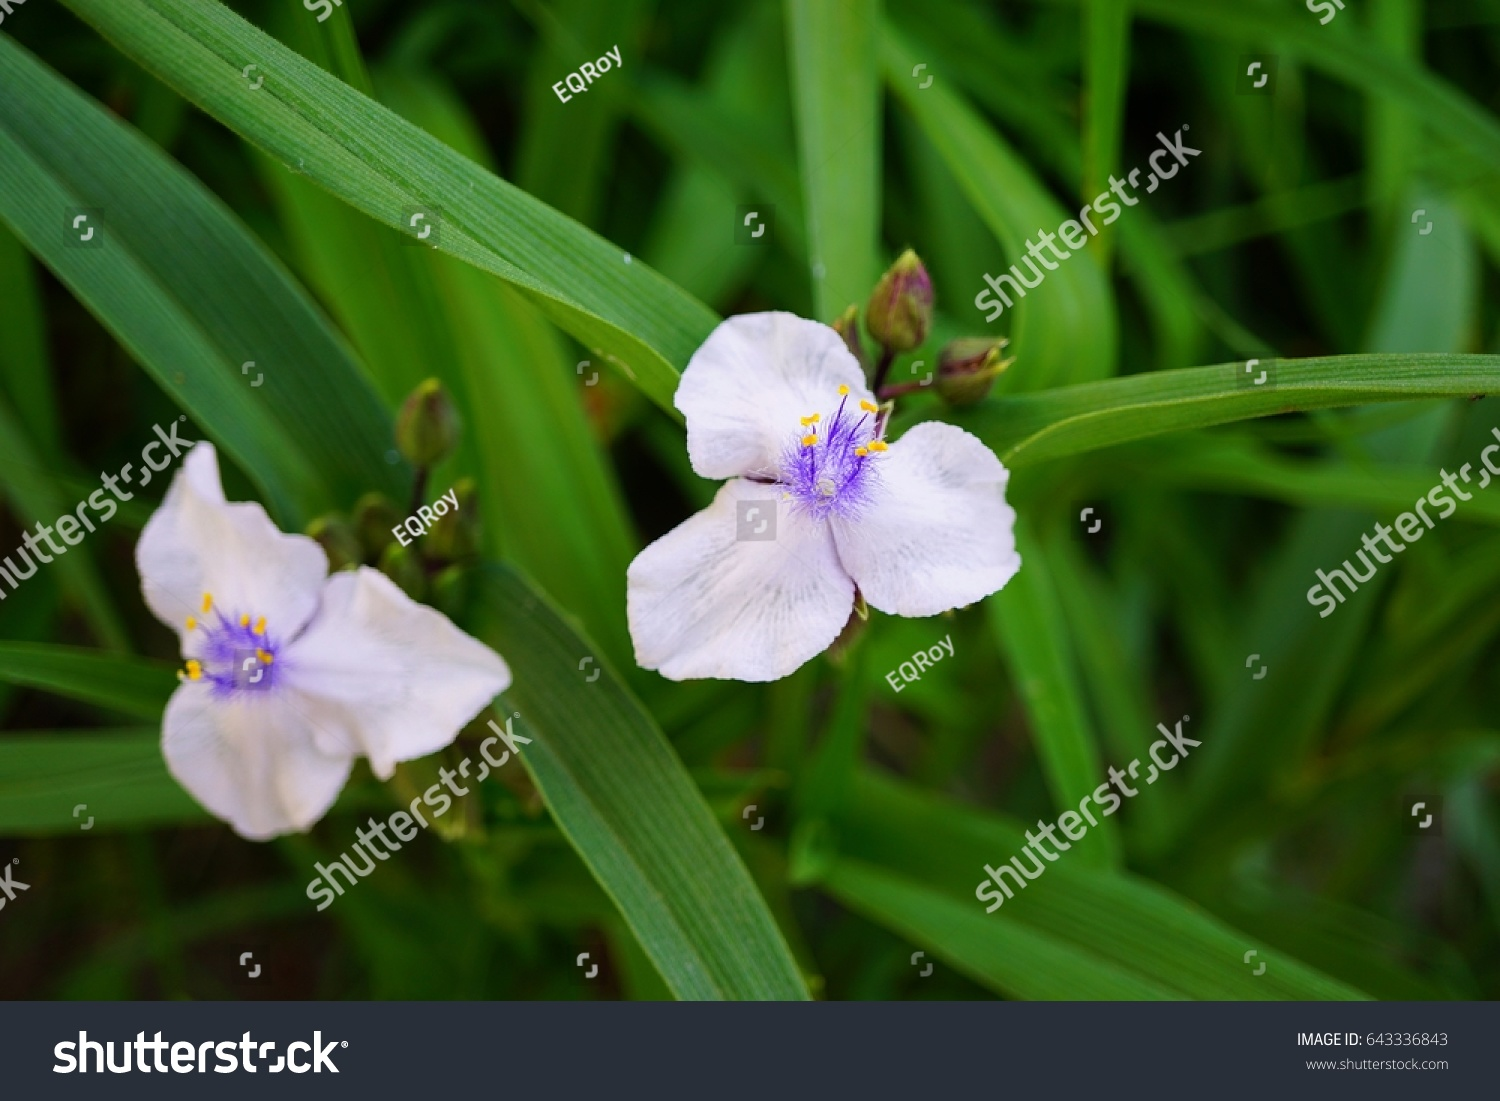 Close Up Of Small Chinese White And Violet Flower With Green